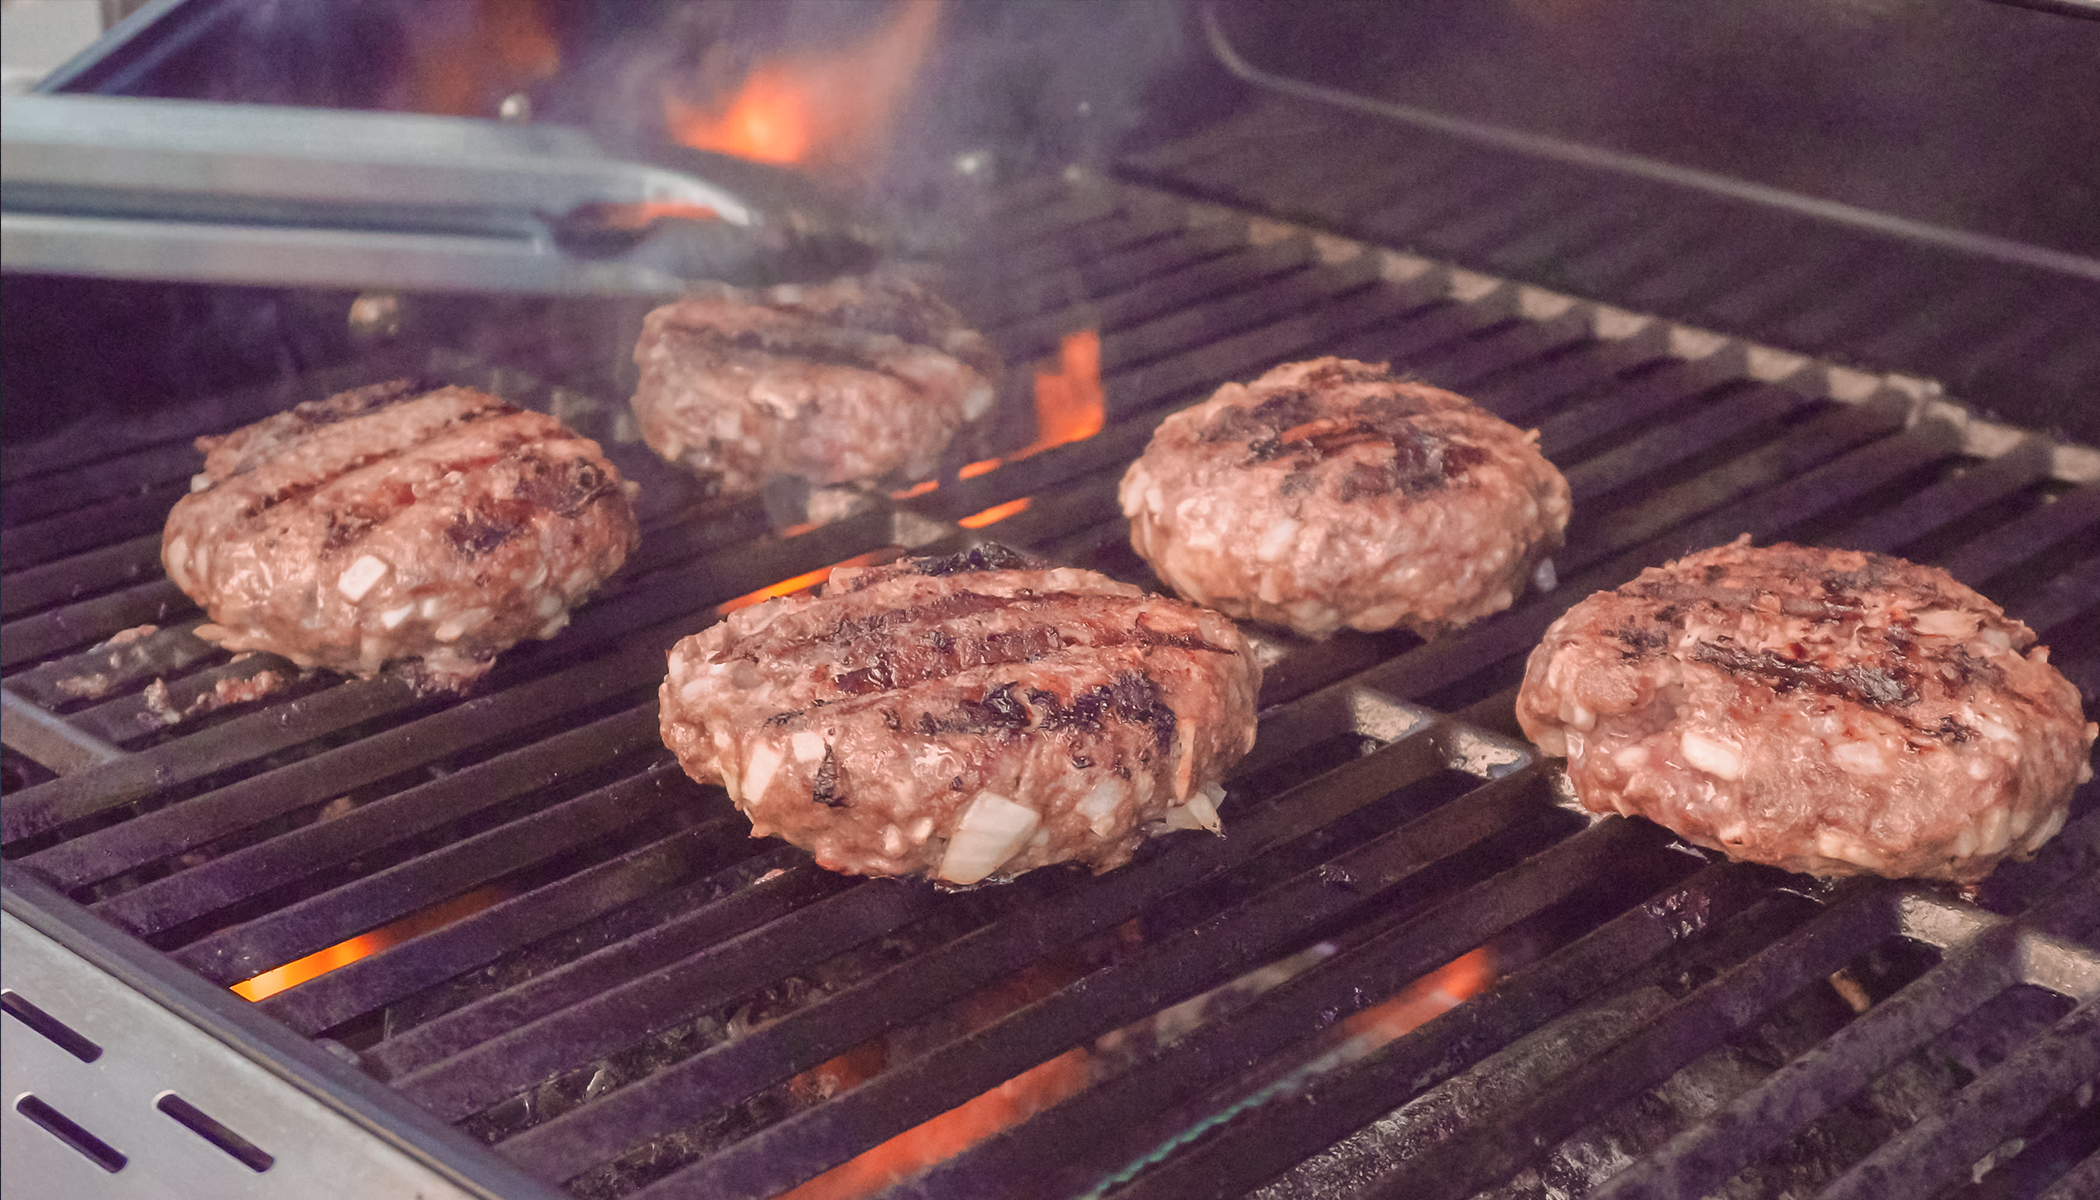 What Happens When You Put Ice Cubes on Burgers? A Master Chef's Secret Is Revealed